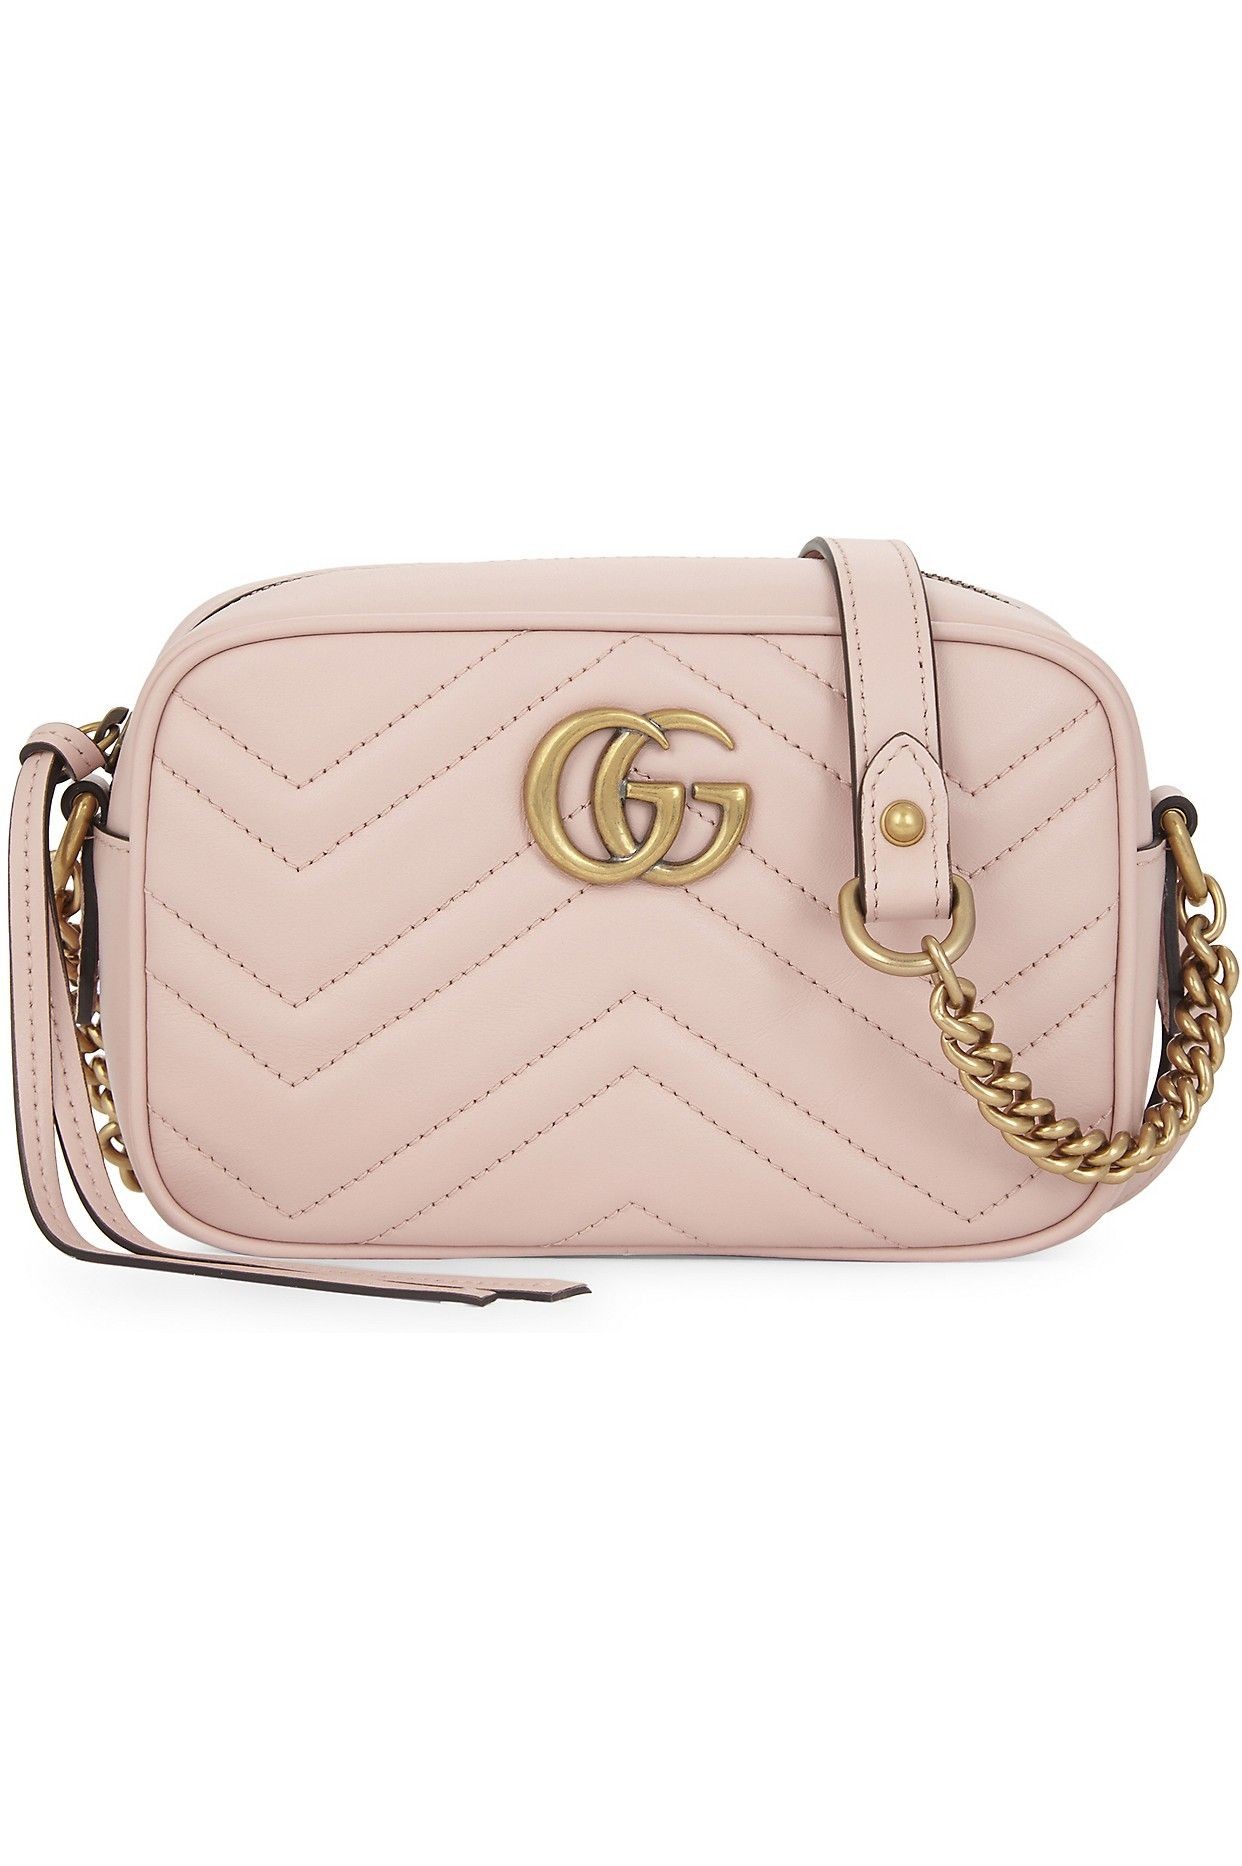 fe1fdcb2cdf GUCCI GG Marmont small quilted leather camera cross-body bag ...